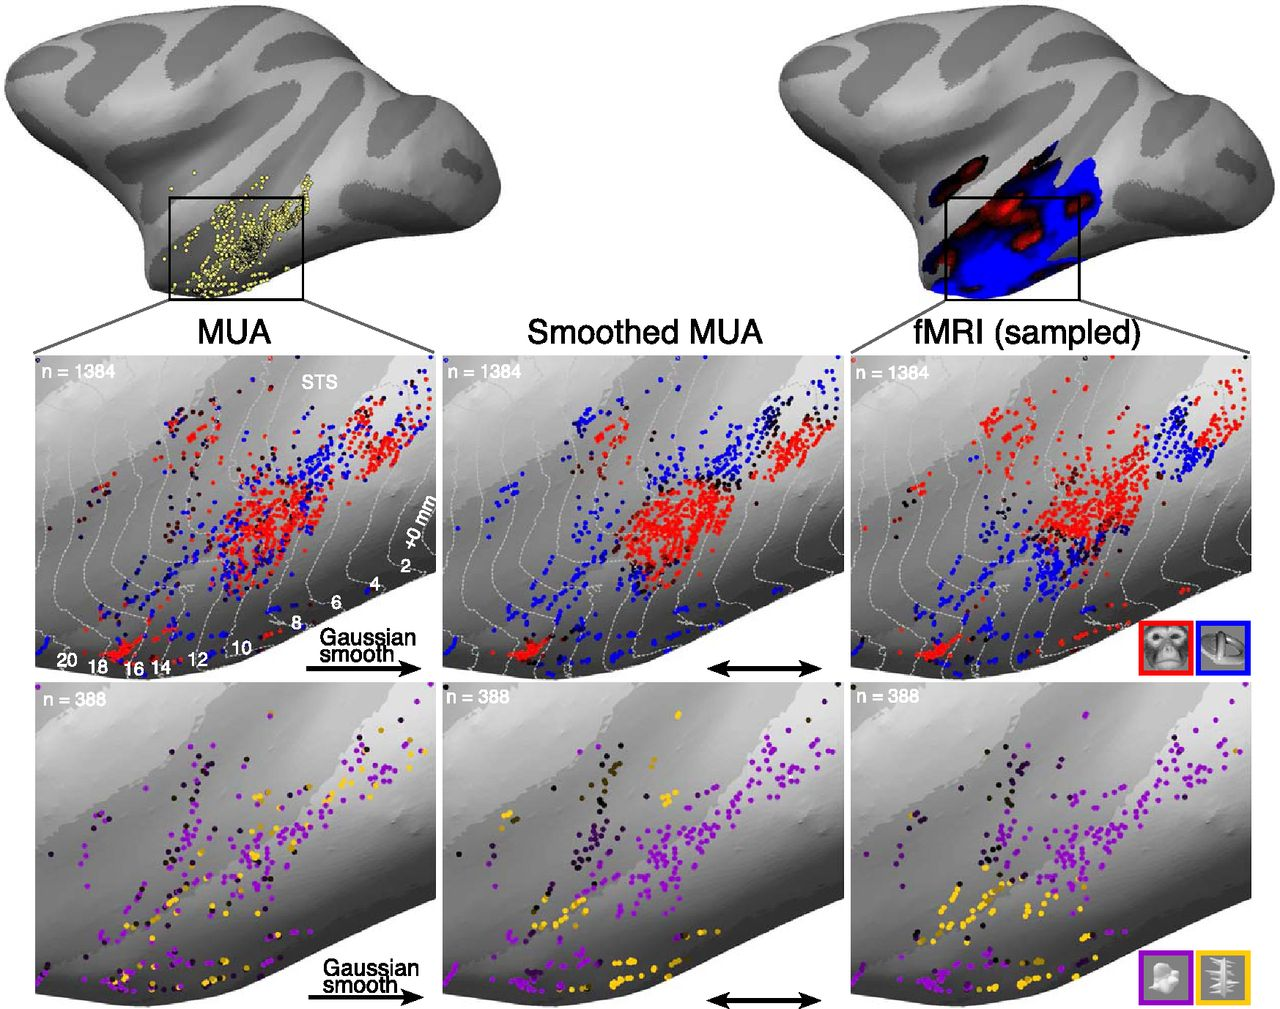 Large-Scale, High-Resolution Neurophysiological Maps Underlying fMRI